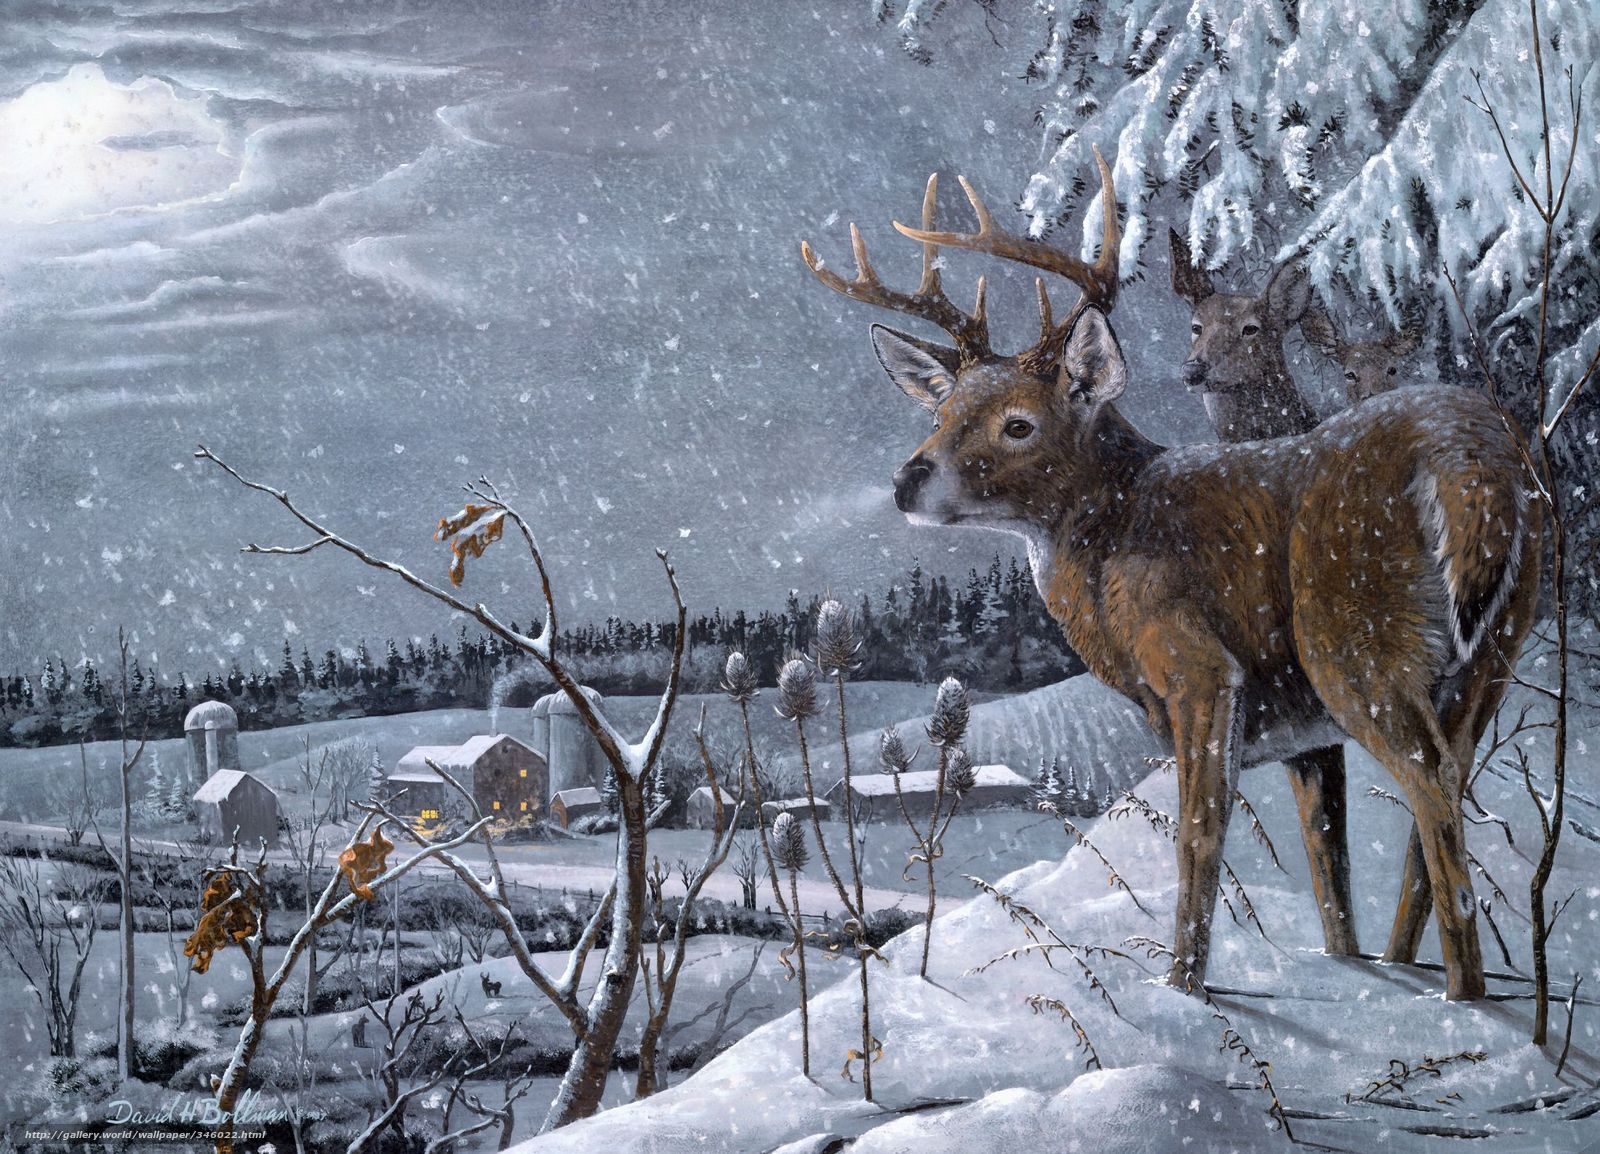 Winter Deer Wallpaper Images Pictures   Becuo 1600x1154